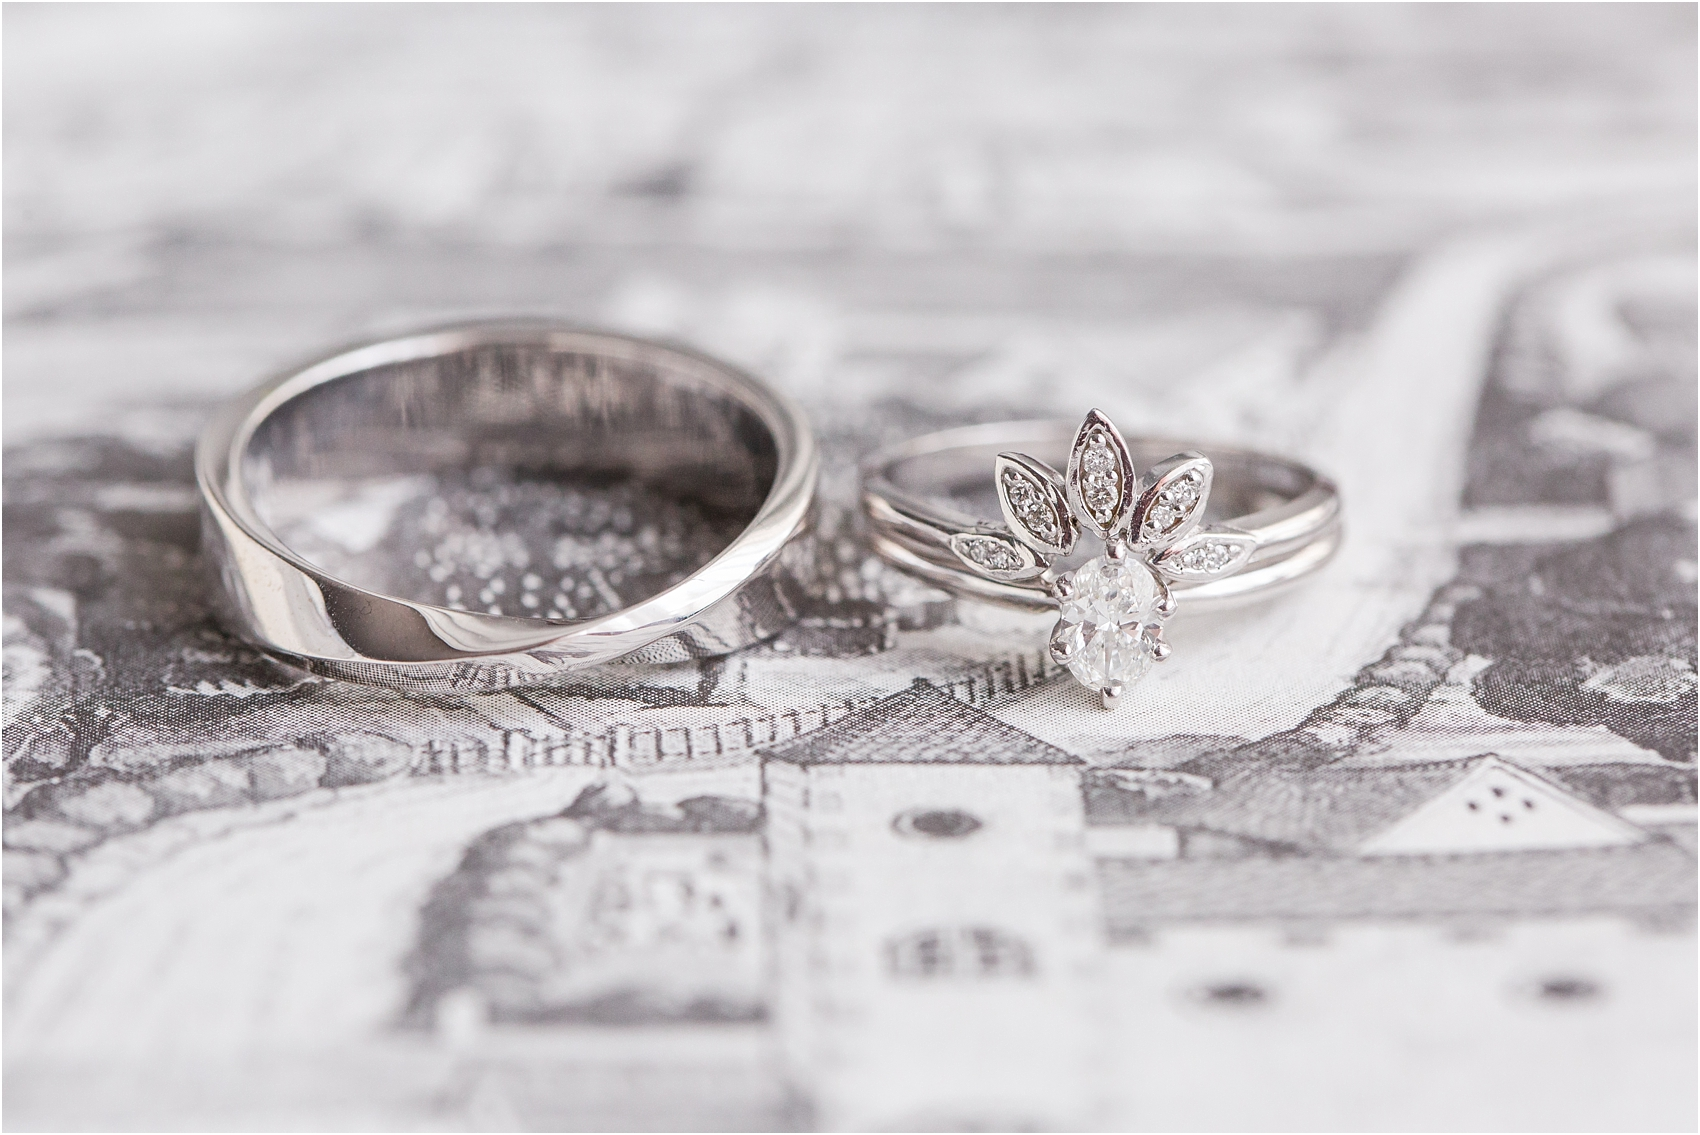 lord-of-the-rings-inspired-wedding-photos-at-crystal-gardens-in-howell-mi-by-courtney-carolyn-photography_0021.jpg